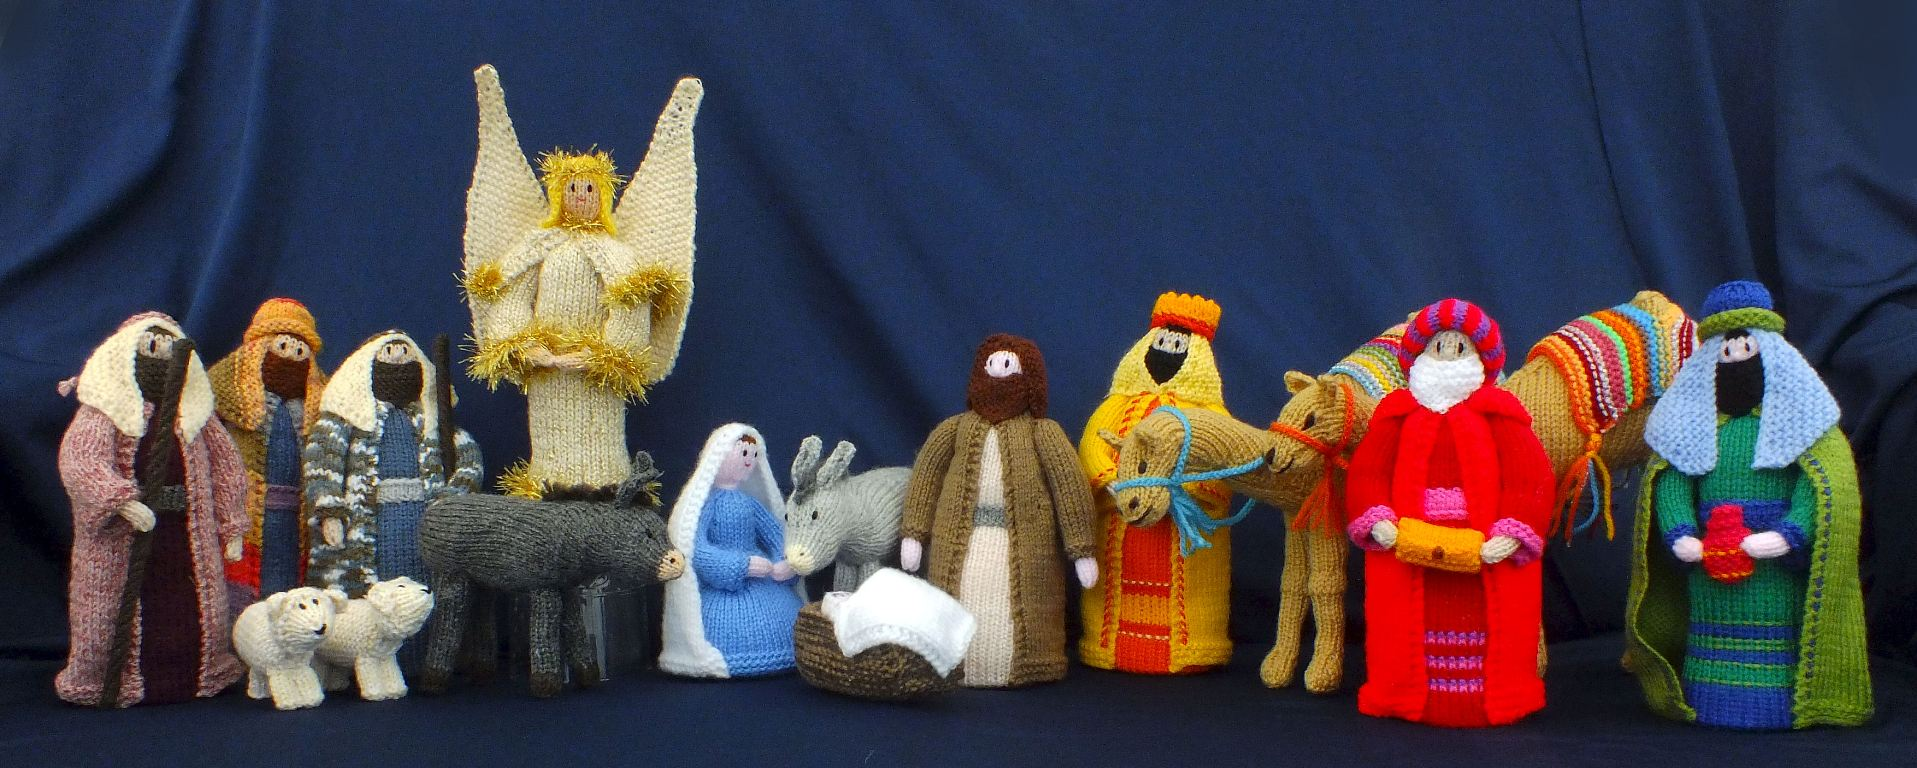 Knitting Pattern Christmas Crib Nativity Scene Booklet : Knitted Nativity Set